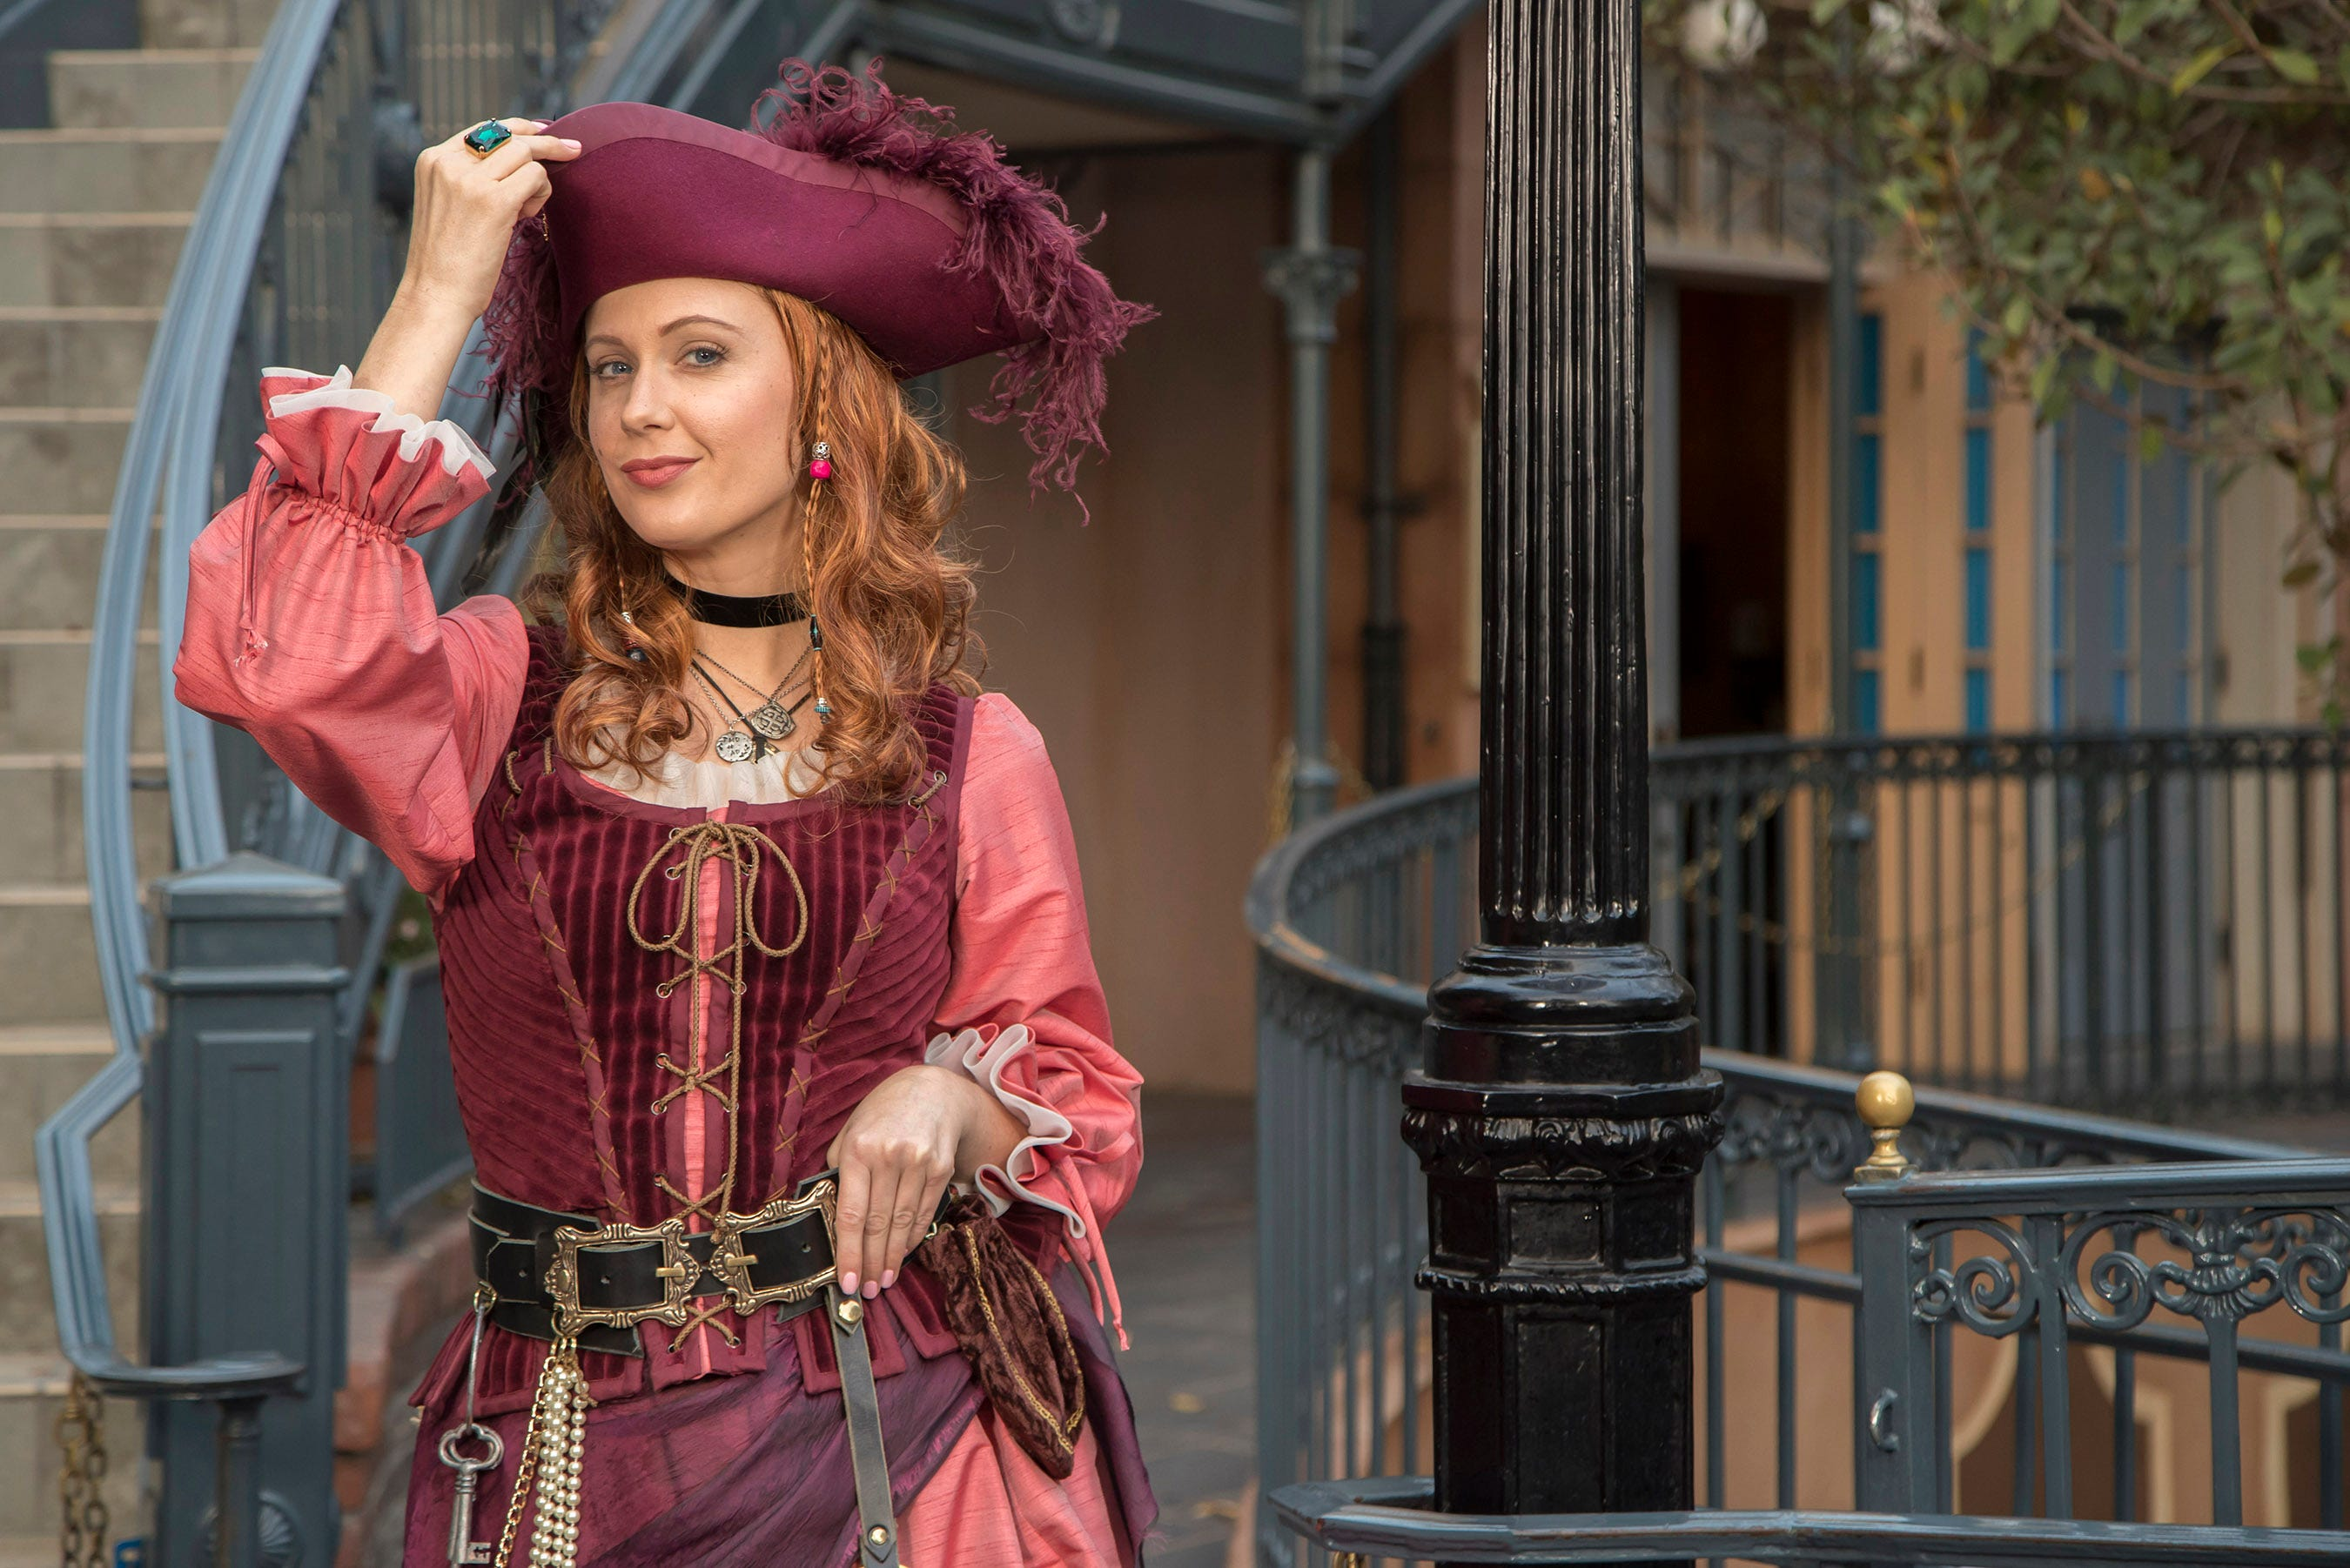 Disney's Pirates of the Caribbean rides get updated